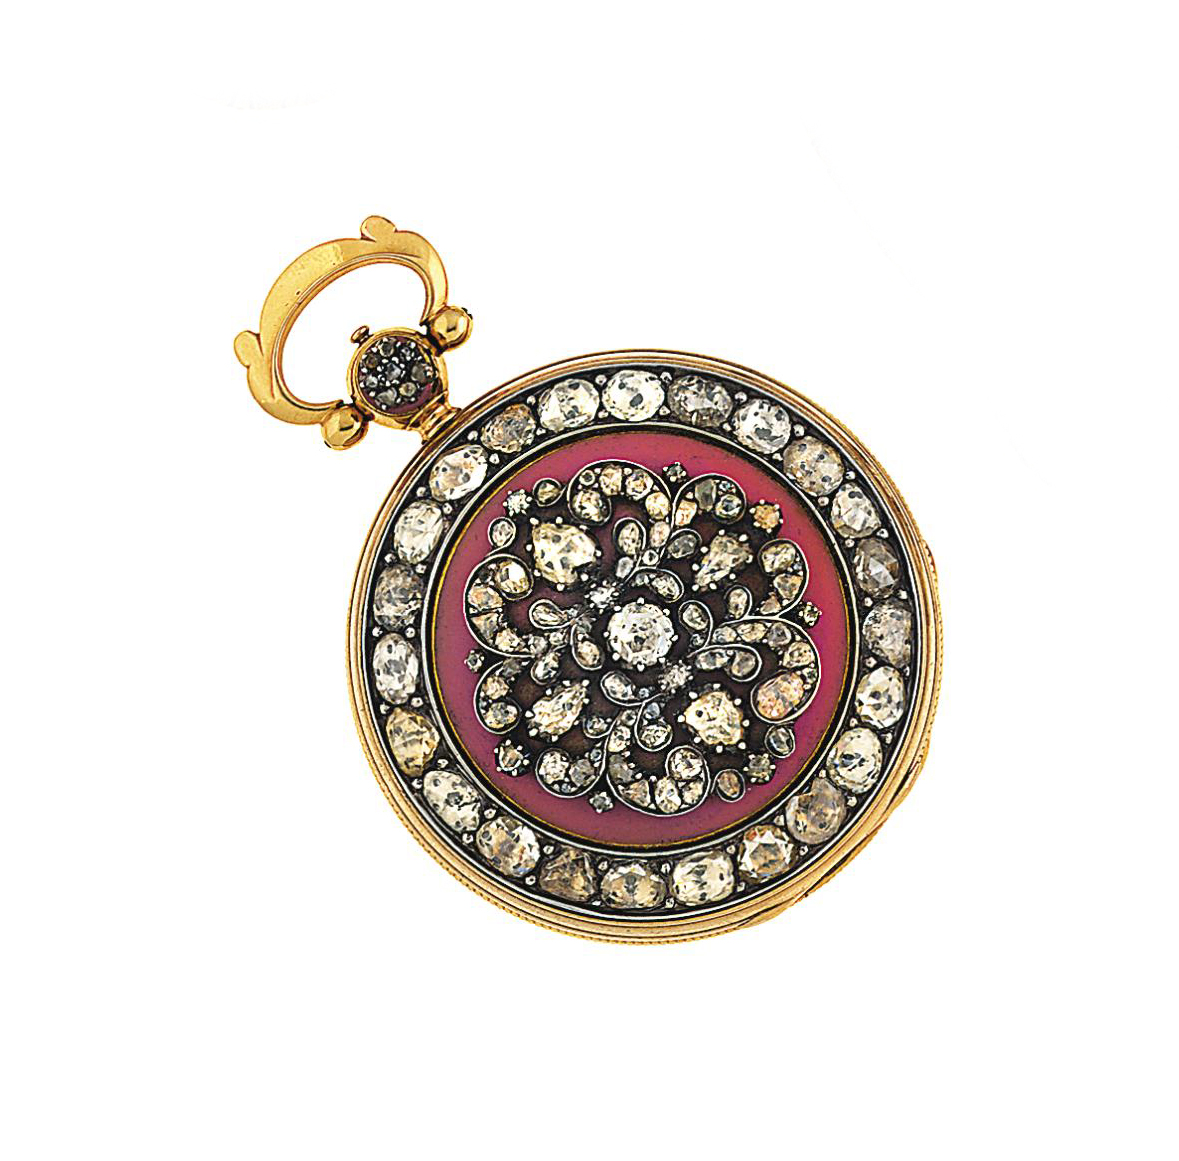 An early 19th century gold, diamond and enamel hunter case pocket watch, by James McCabe